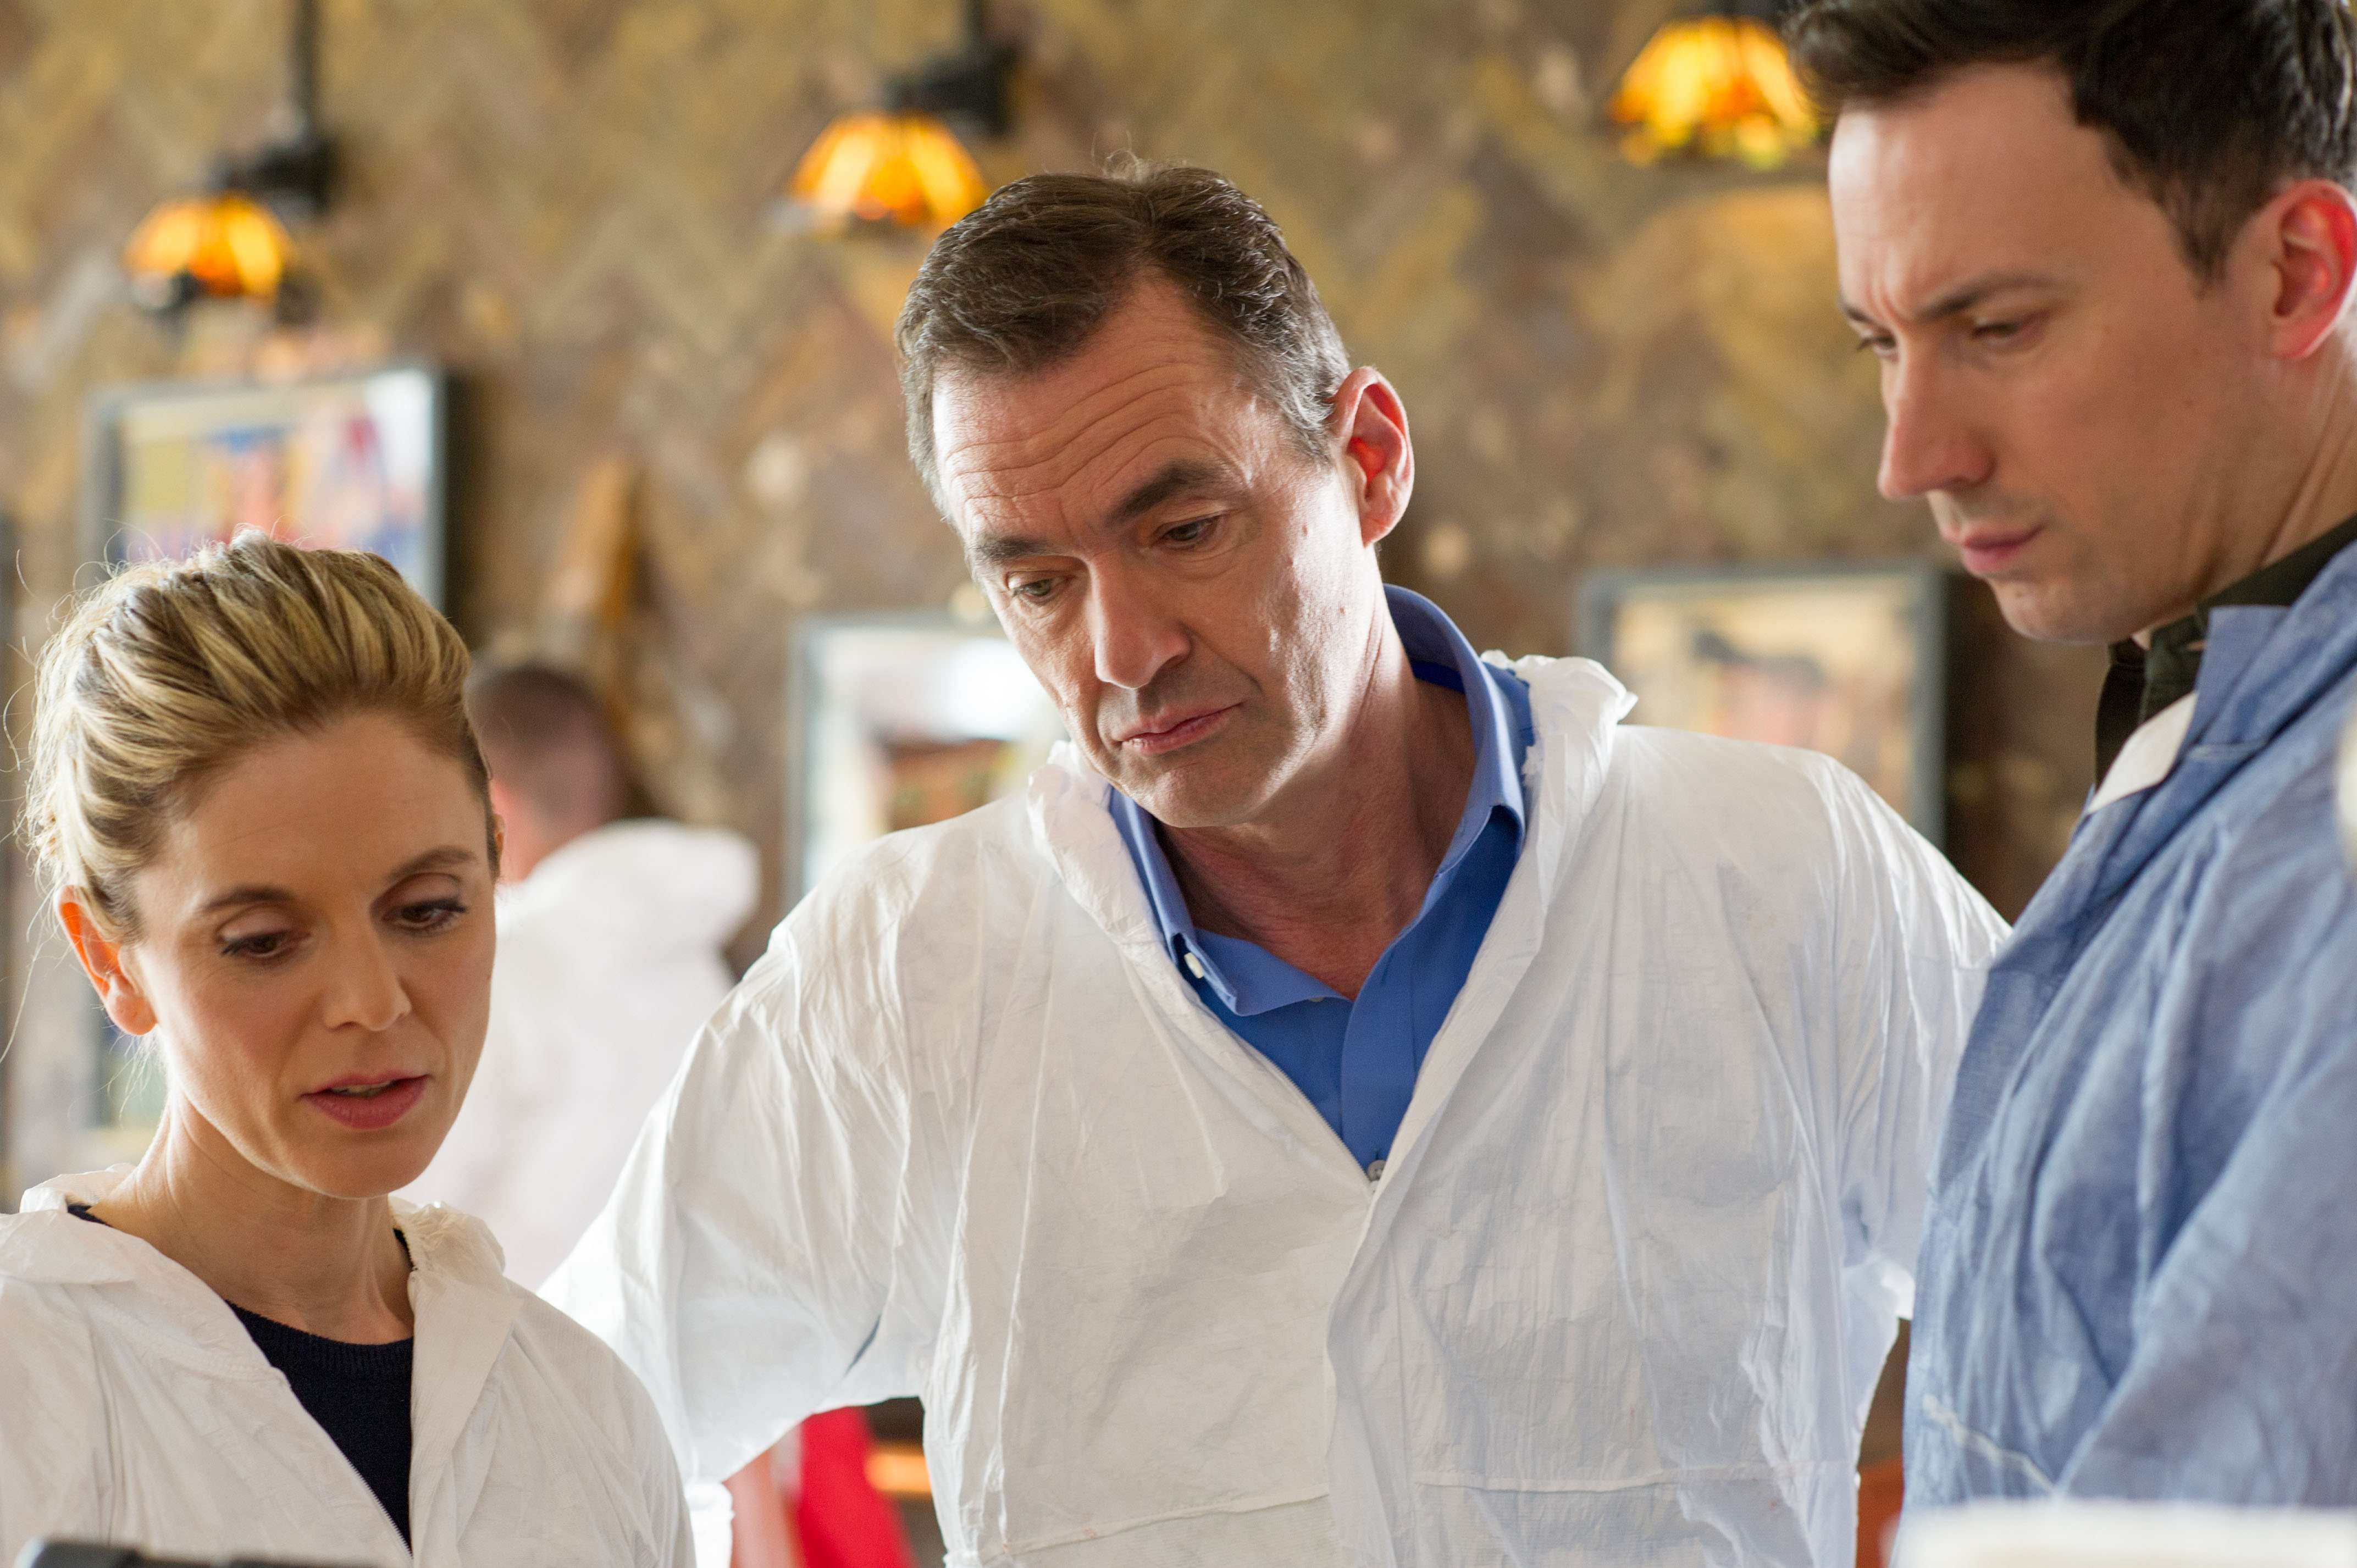 WARNING: Embargoed for publication until 00:00:01 on 28/12/2018 - Programme Name: Silent Witness XXII - TX: n/a - Episode: n/a (No. 2) - Picture Shows: Dr Nikki Alexander (EMILIA FOX), Dr Thomas Chamberlain (RICHARD LINTERN), Dr Jack Hodgson [DAVID CAVES] - (C) BBC - Photographer: Sally Mais